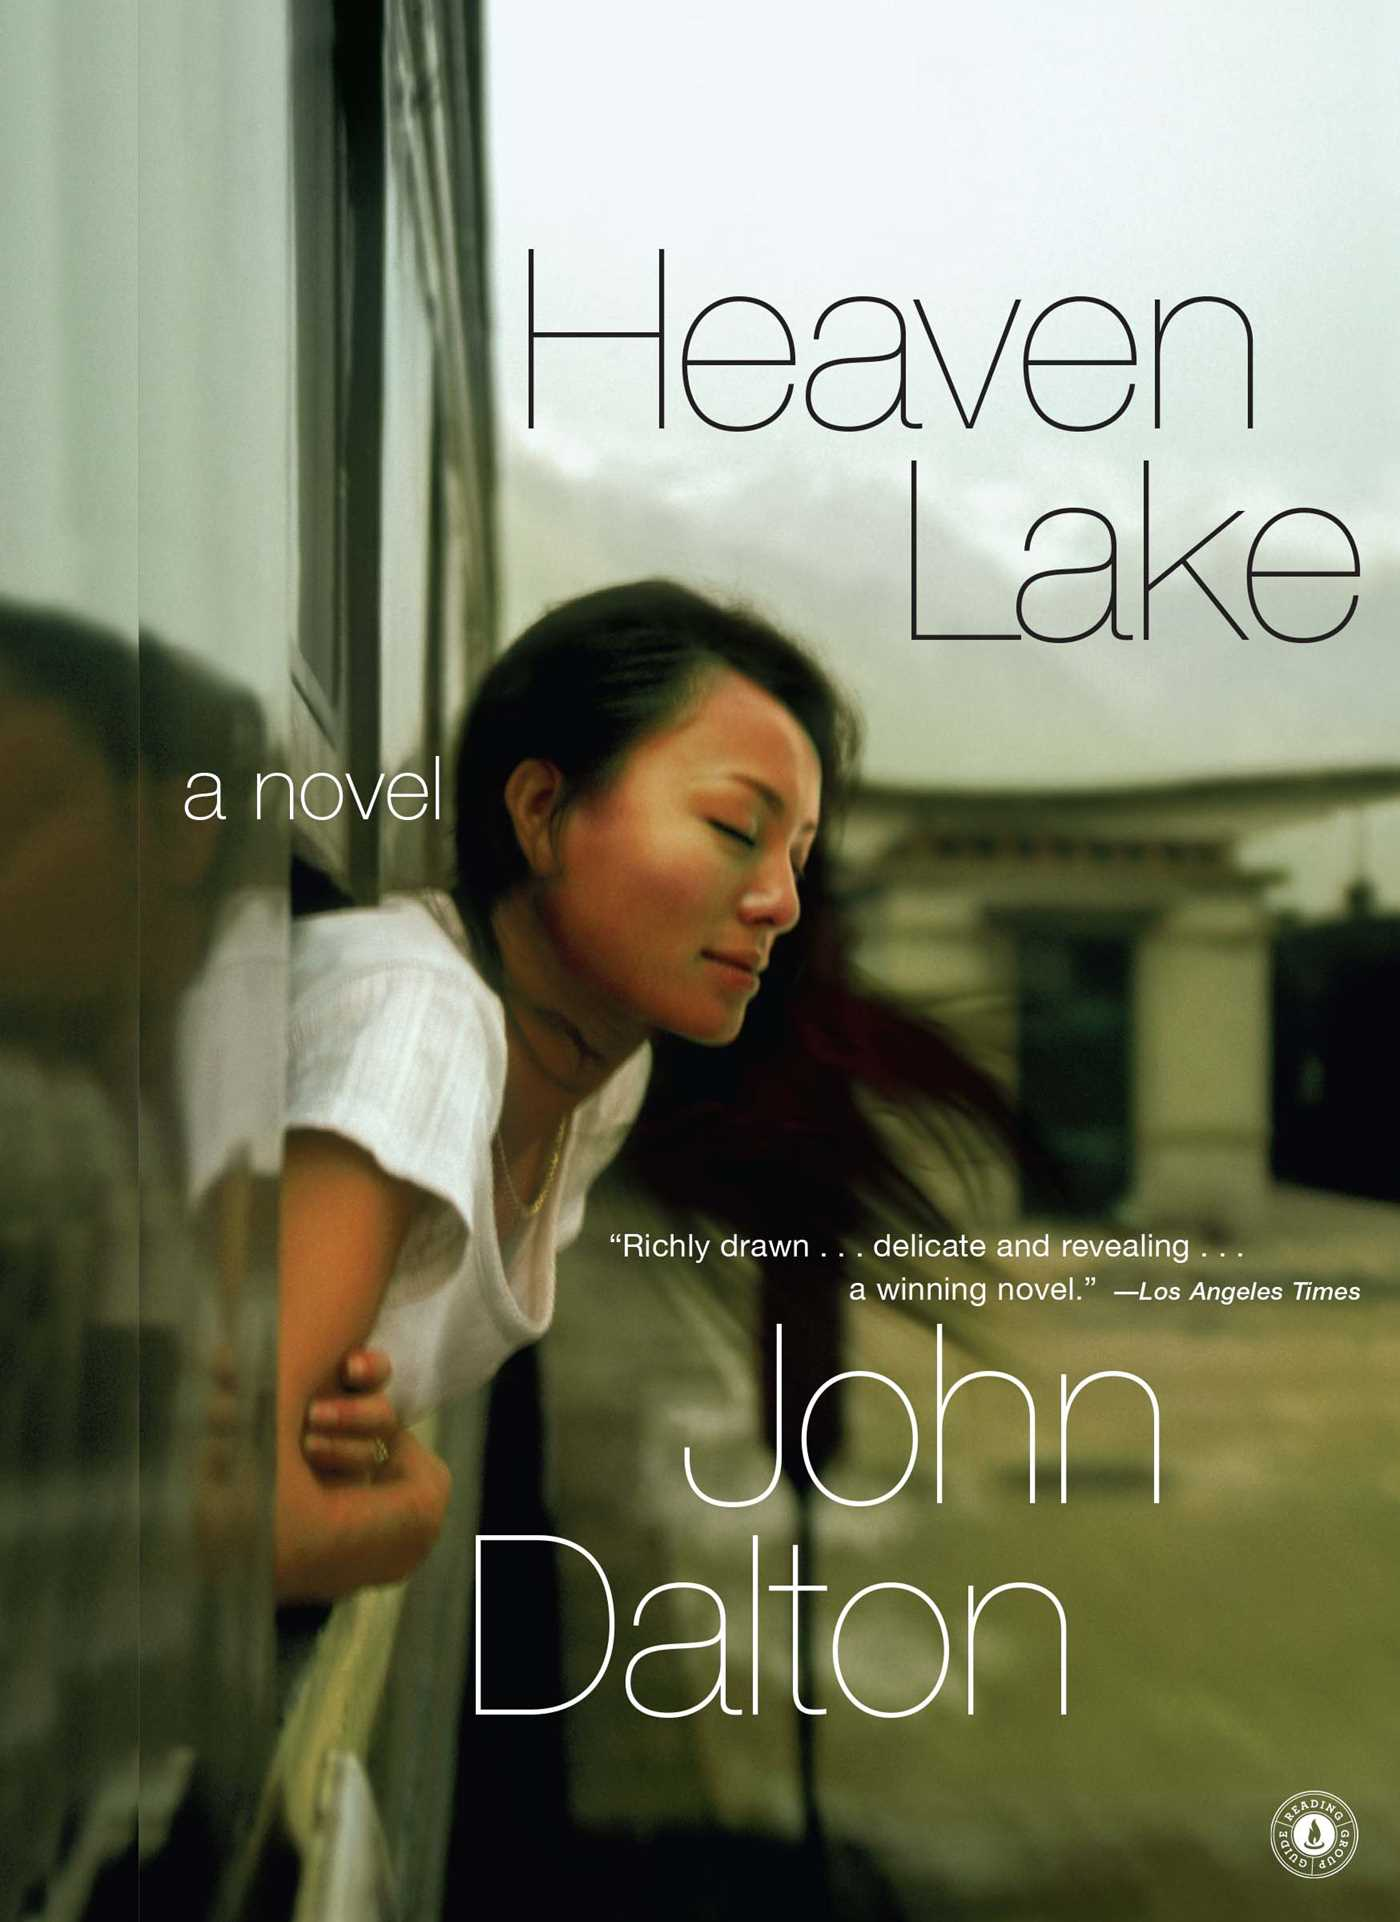 Heaven-lake-9781439103876_hr